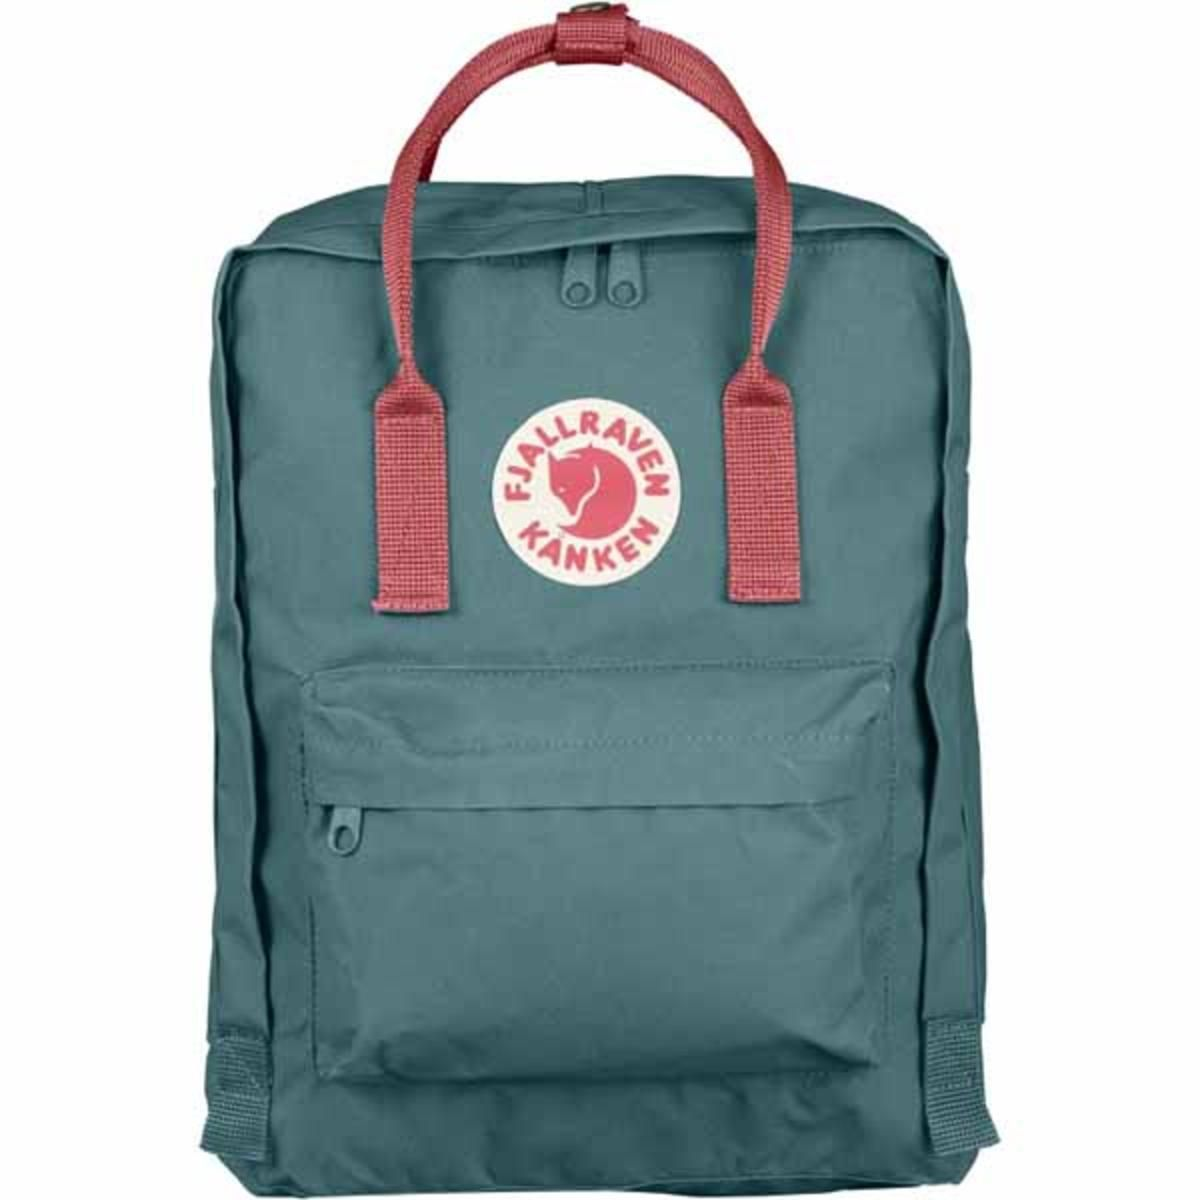 ffc1bae37 FjallRaven Kanken Backpack - Frost Green/Peach Pink - The Warming Store